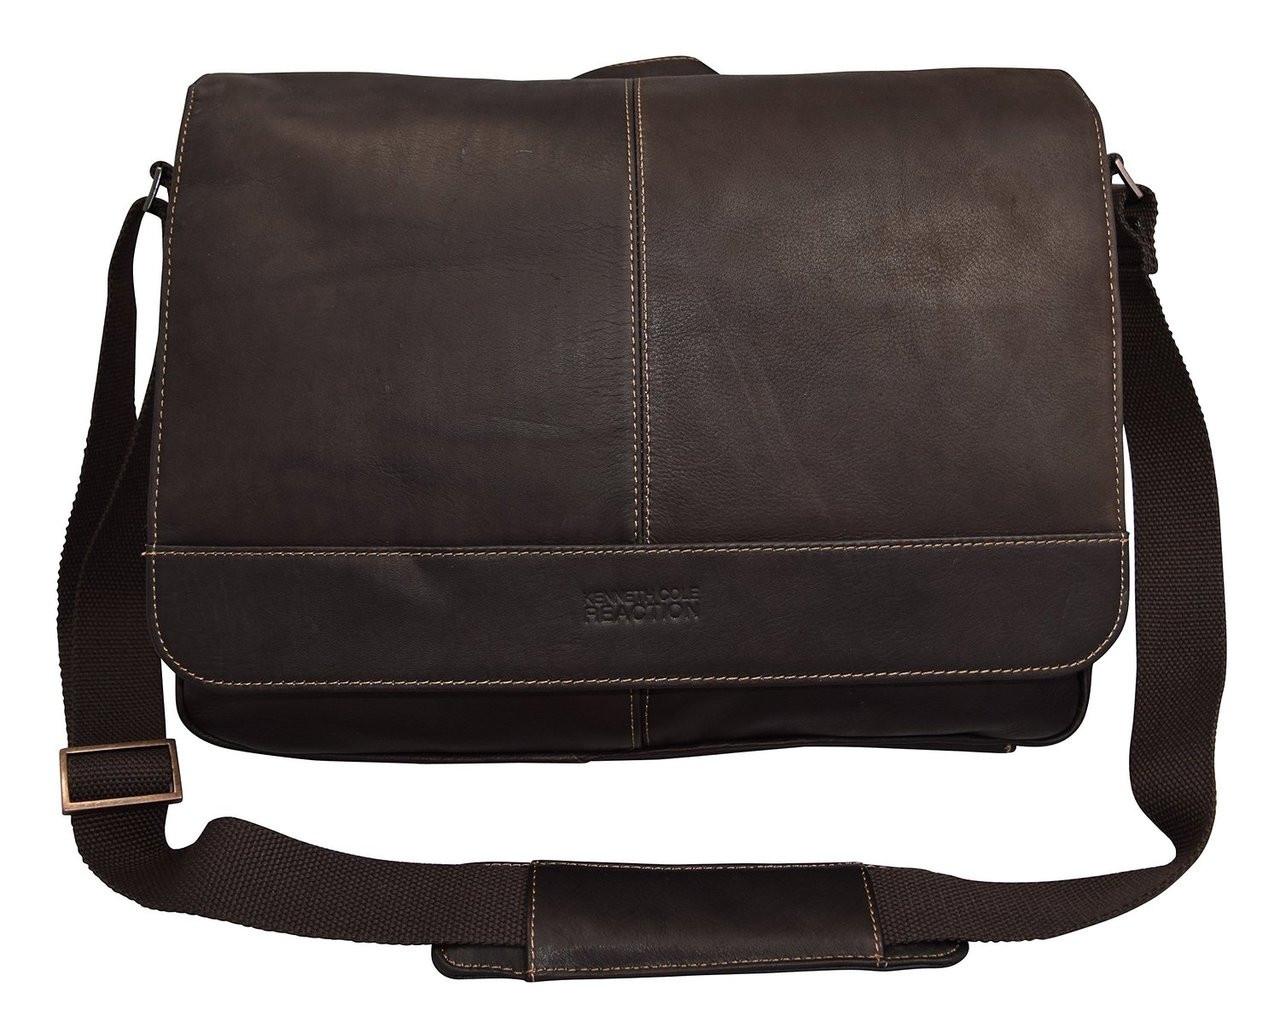 Kenneth Cole Reaction Risky Business Colombian Messenger Bag 52454 Loading Zoom